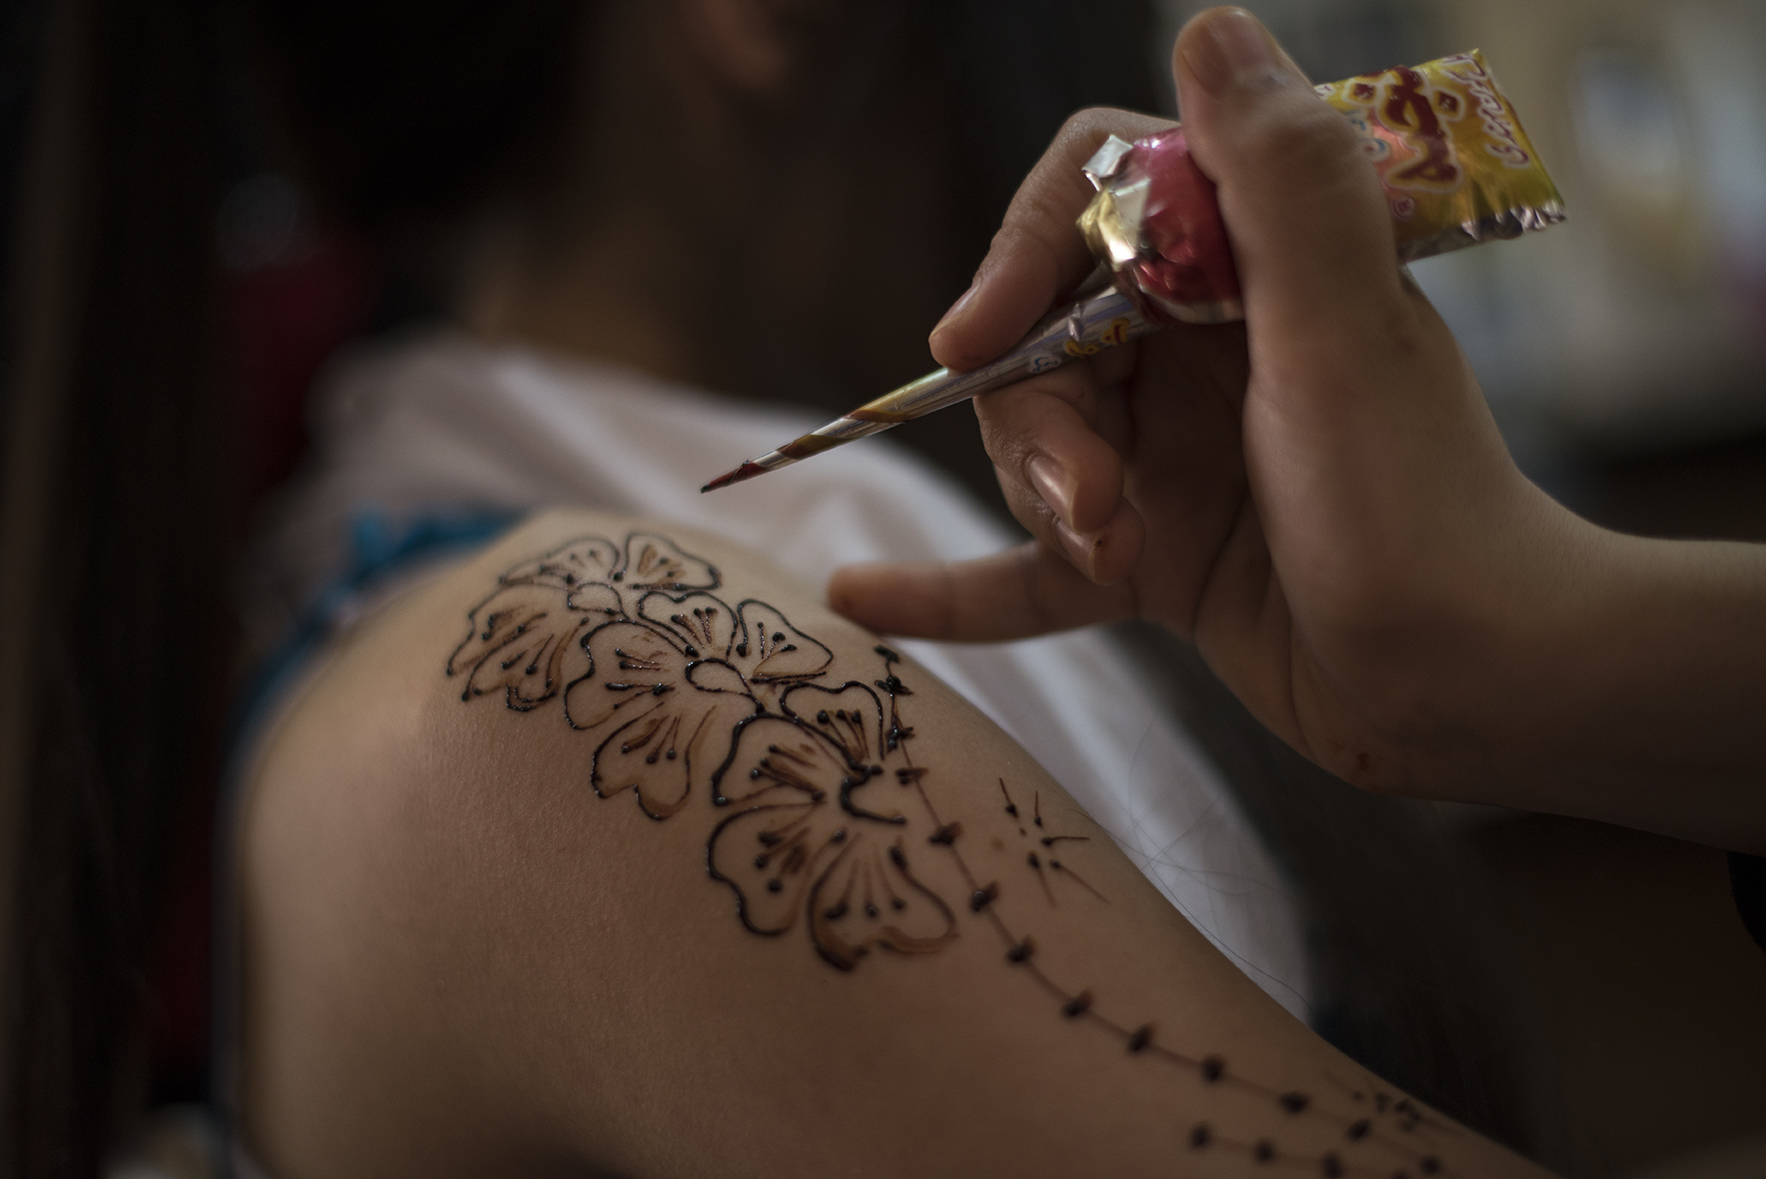 Noor, age unknown (roughly 16), is painted with traditional henna designs as she prepares for her wedding later that day in a beauty salon in the Zaatari refugee camp in Jordan, August 25, 2014. While marriage under the age of eighteen was a common Syrian tradition before the start of the civil war, more and more Syrian girls are marrying at a younger age because of the insecurity of the war,  because many families feel the girls in their family may be sexually harassed if they are not under the care of a husband, and because of prospect of alleviating the financial burden of one more mouth to feed.